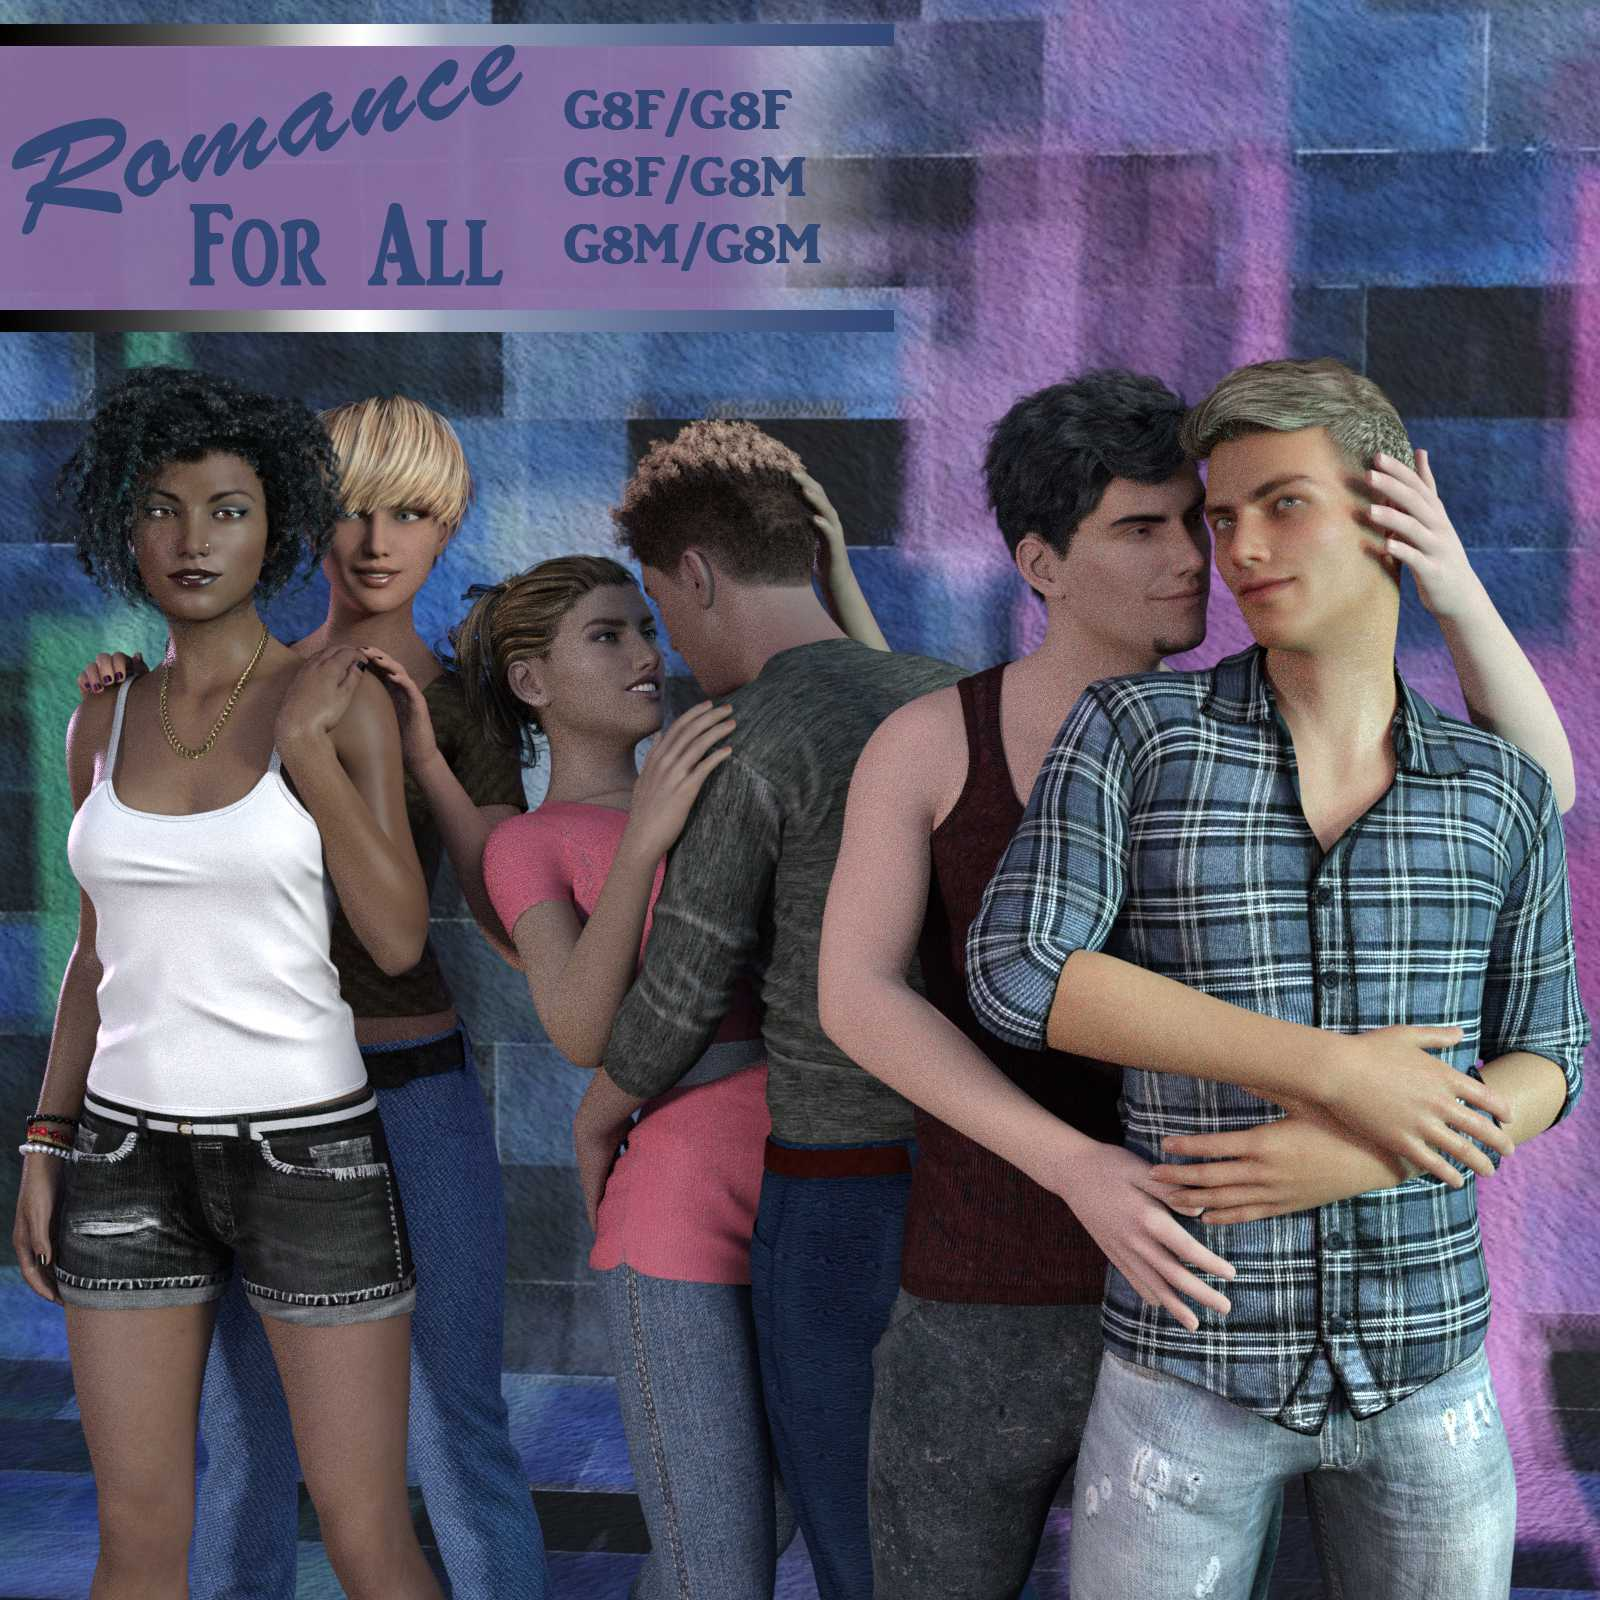 Romance for All Poses